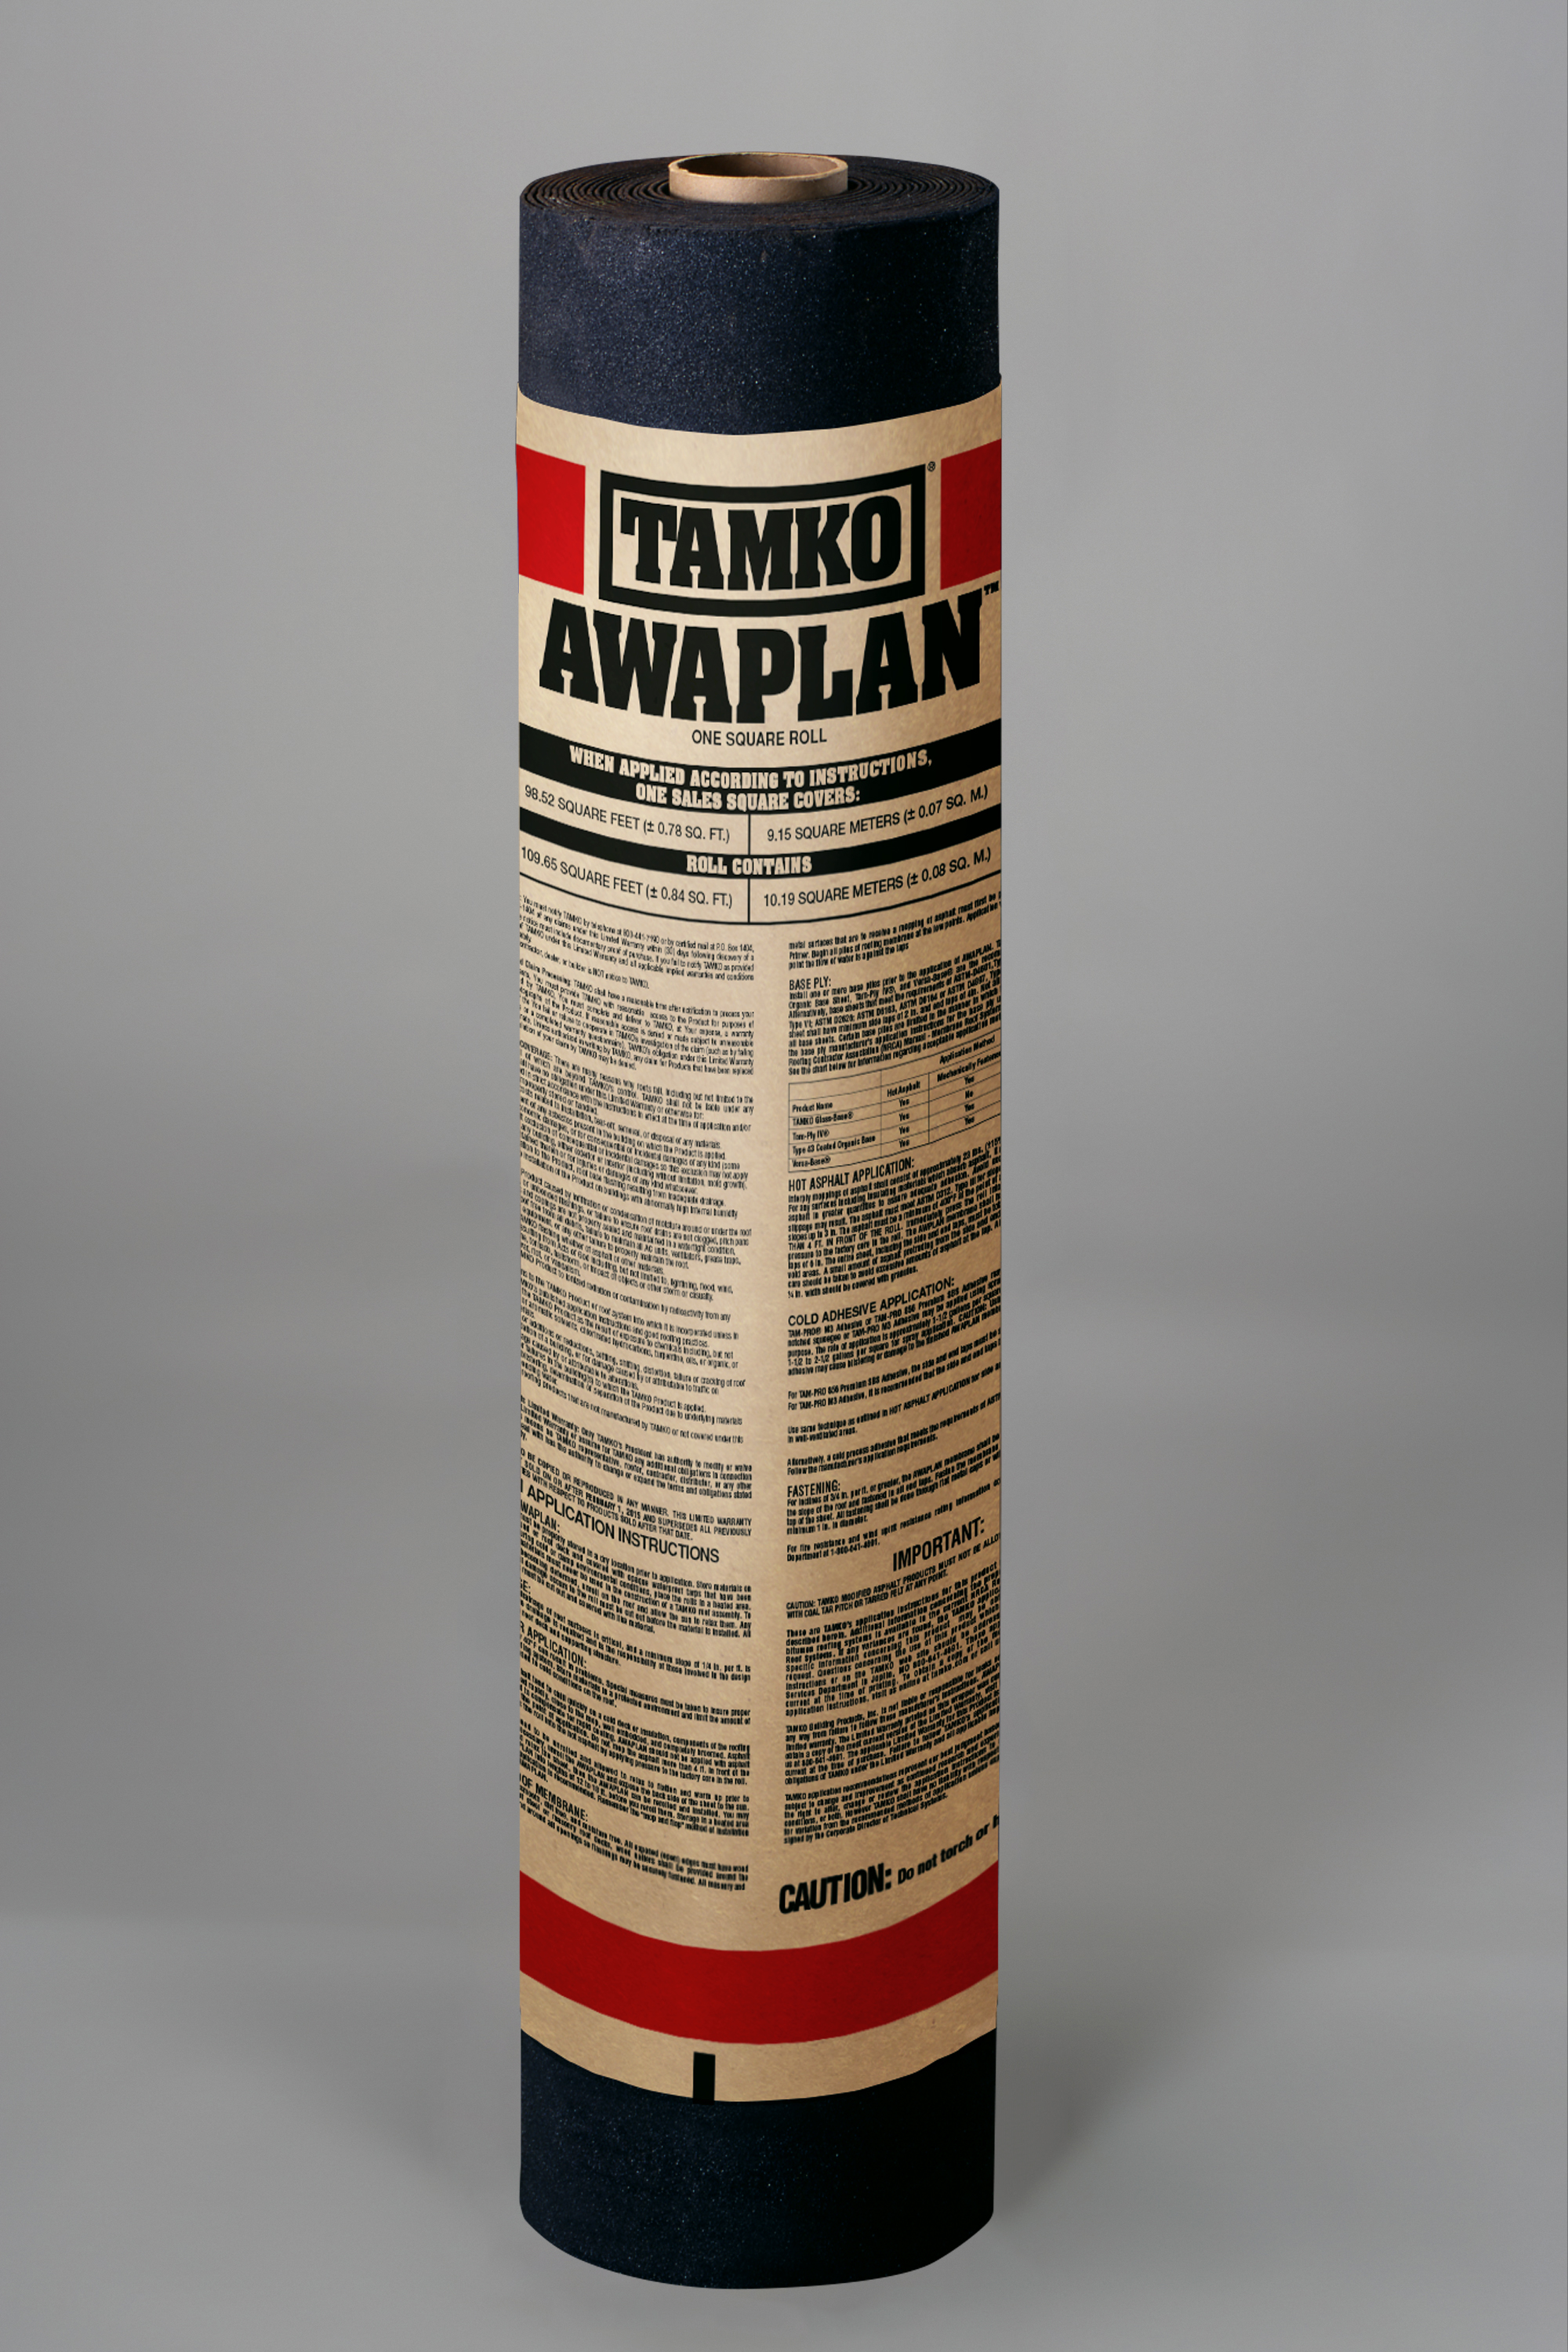 TAMKO - AWAPLAN SBS-Modified Roll Roofing